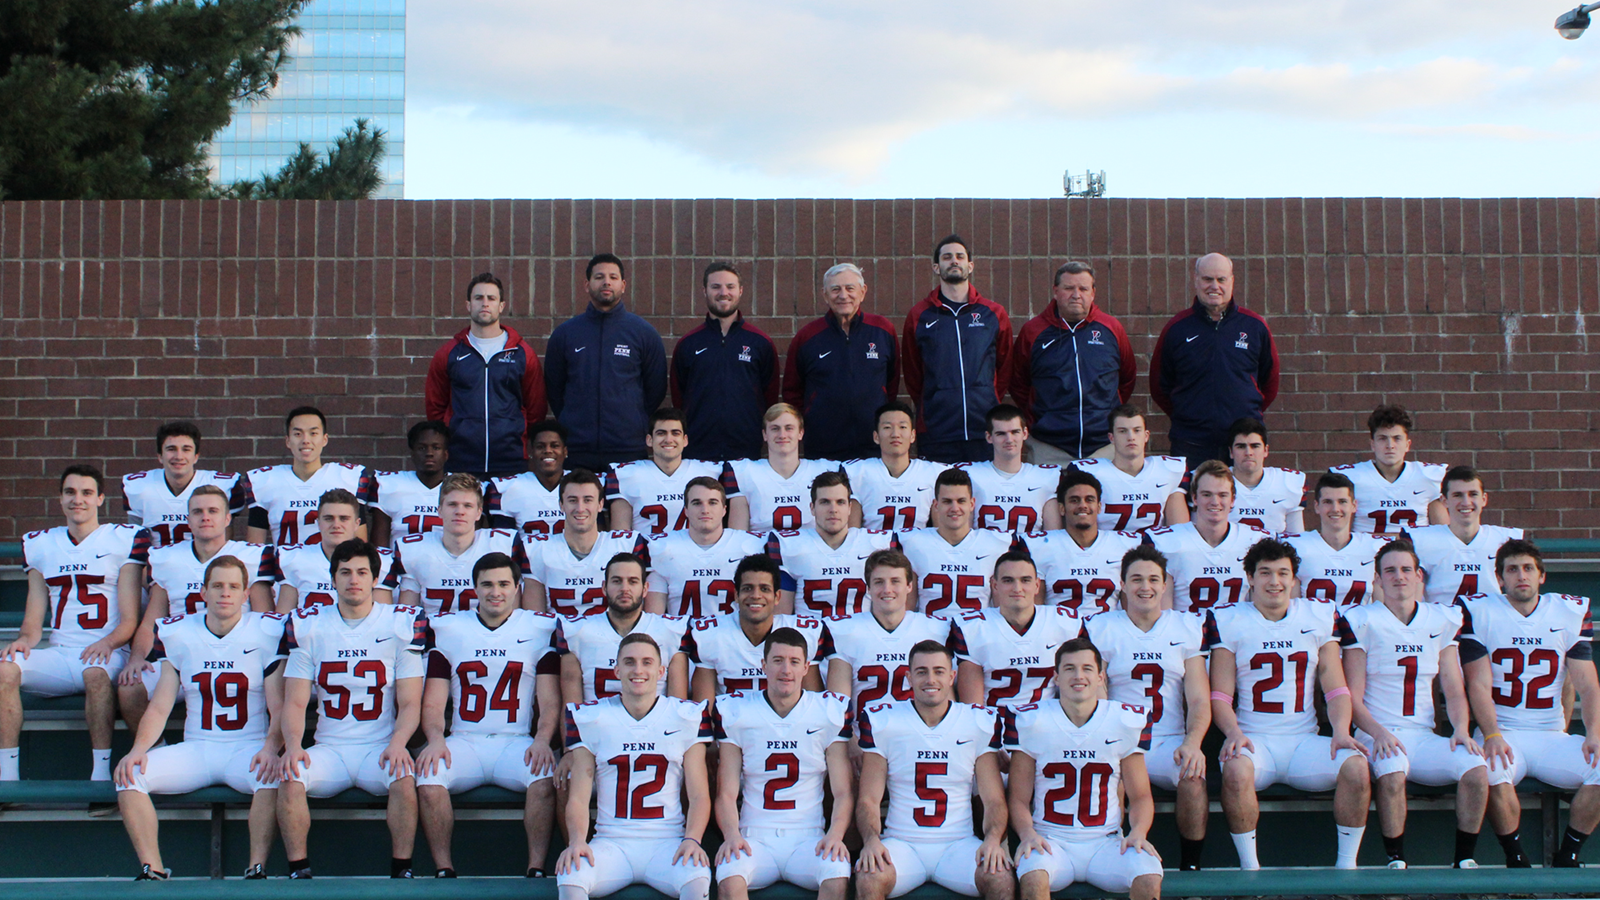 2018 Sprint Football Roster University Of Pennsylvania Athletics